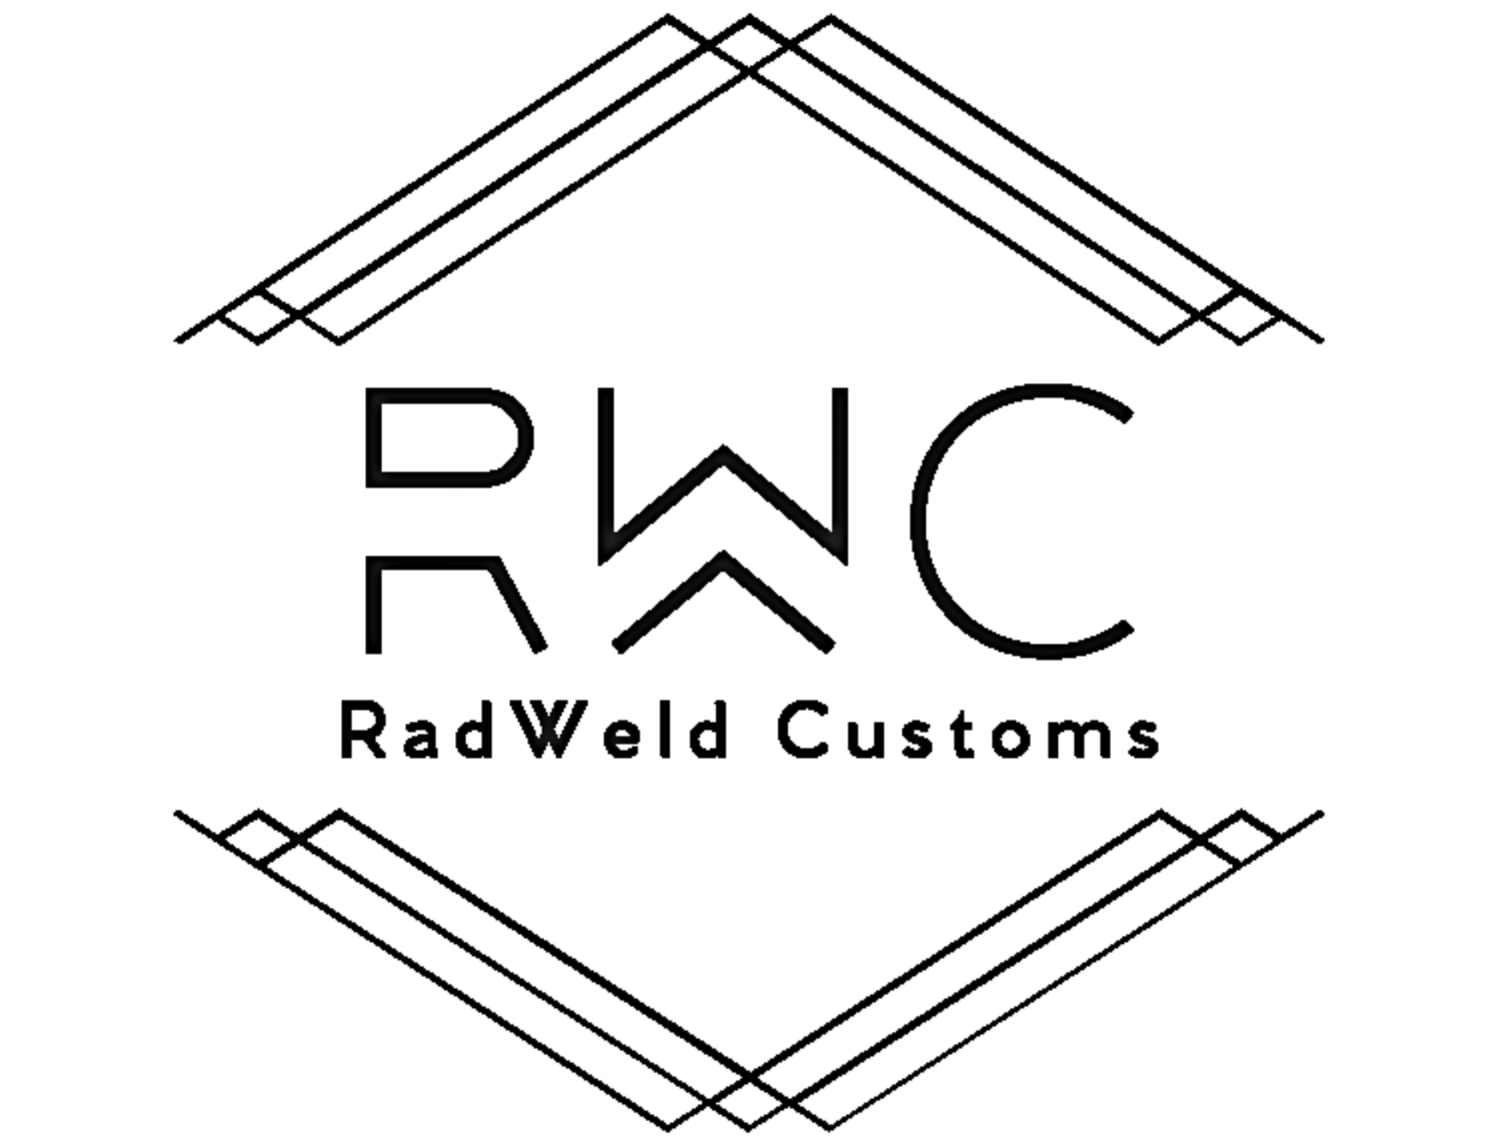 RadWeld Customs